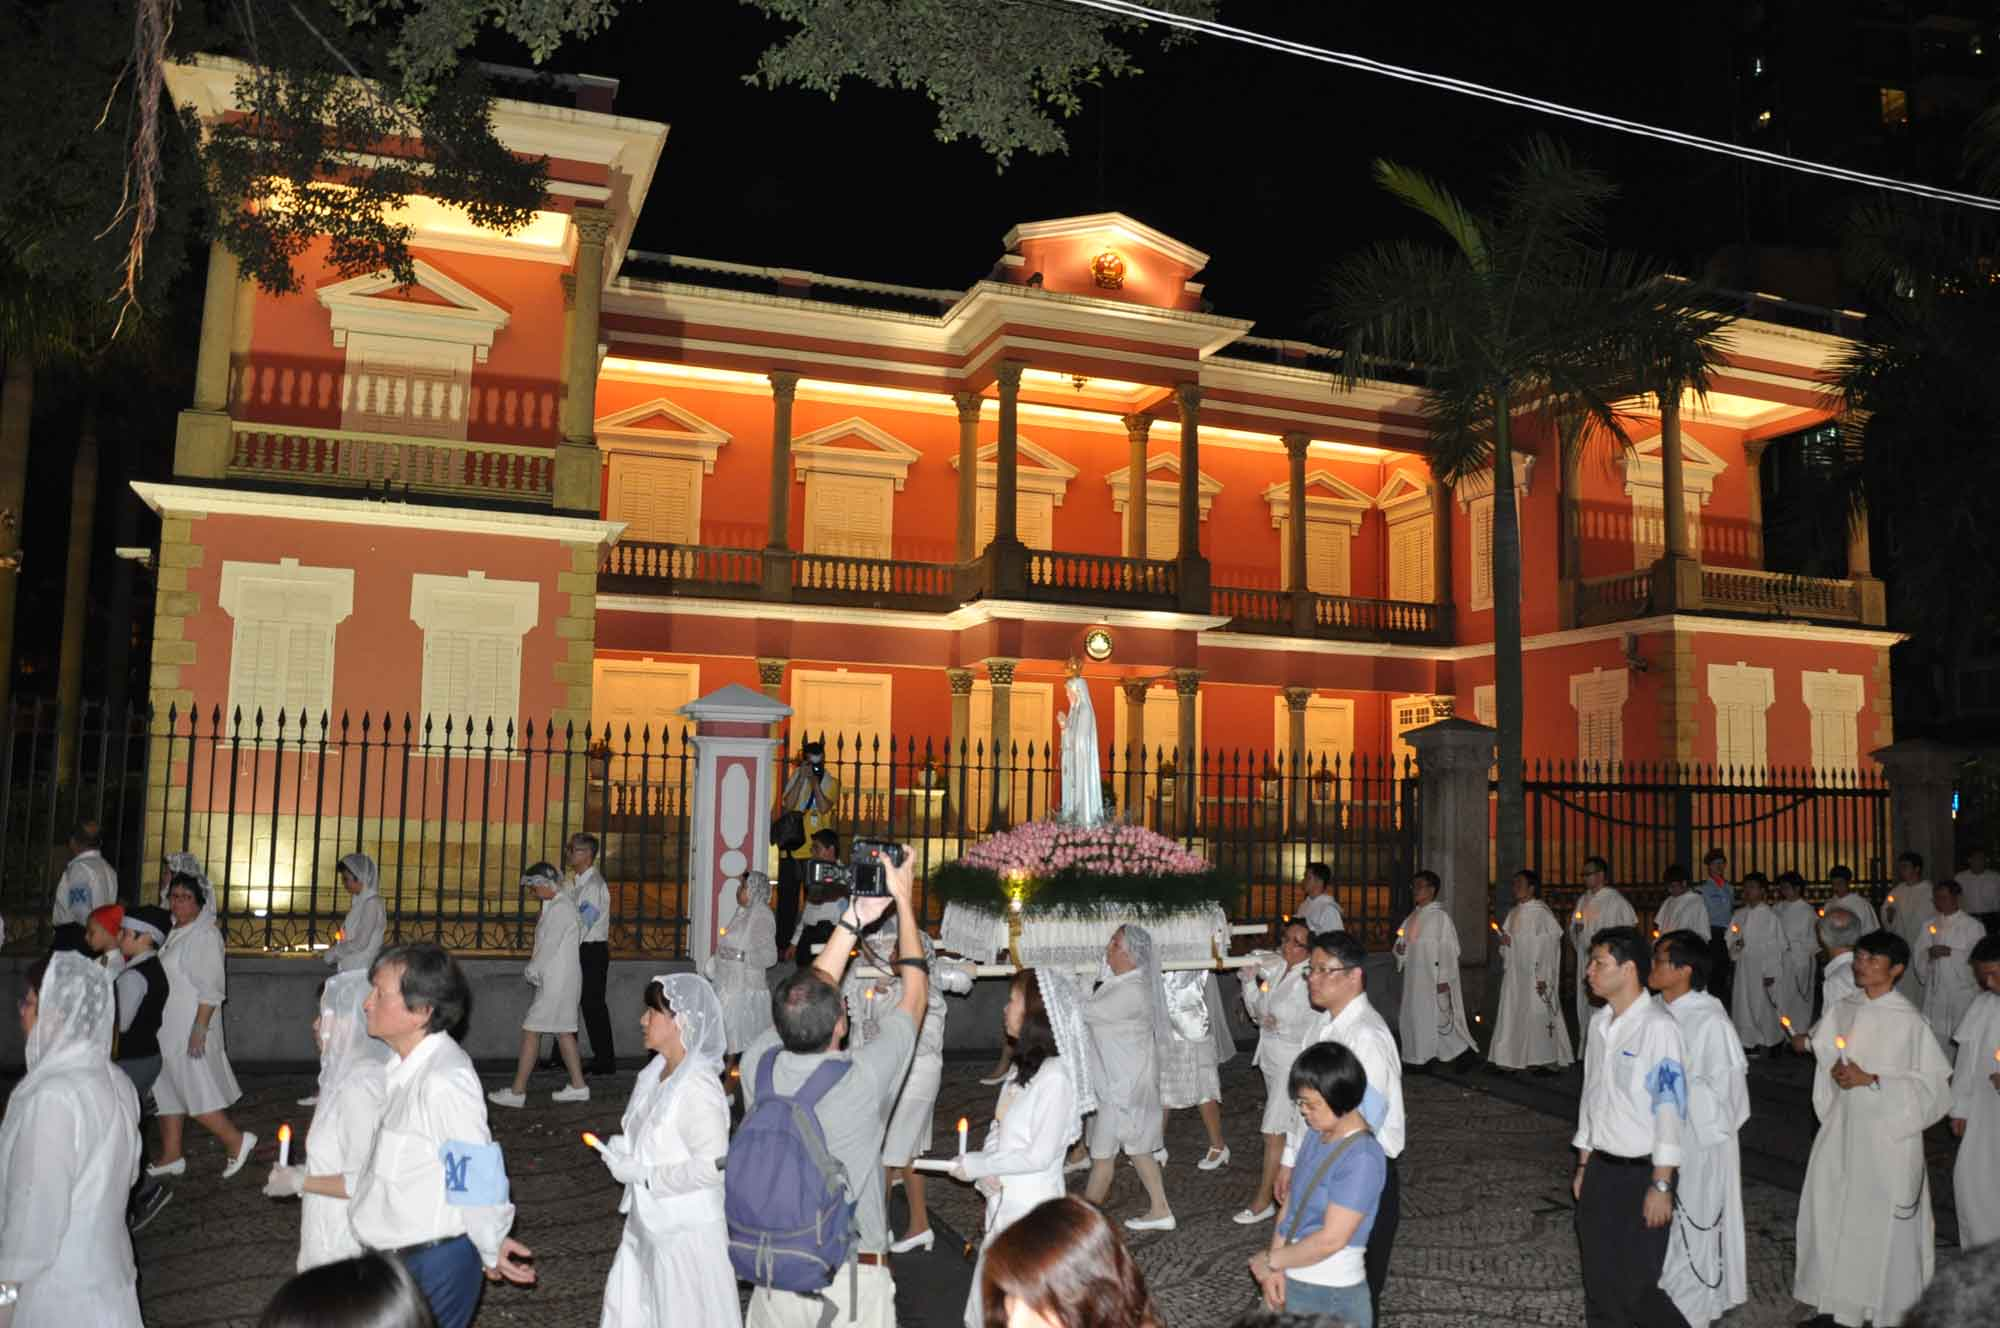 Macau's Our Lady of Fatima Procession outside of Praia Grande red building